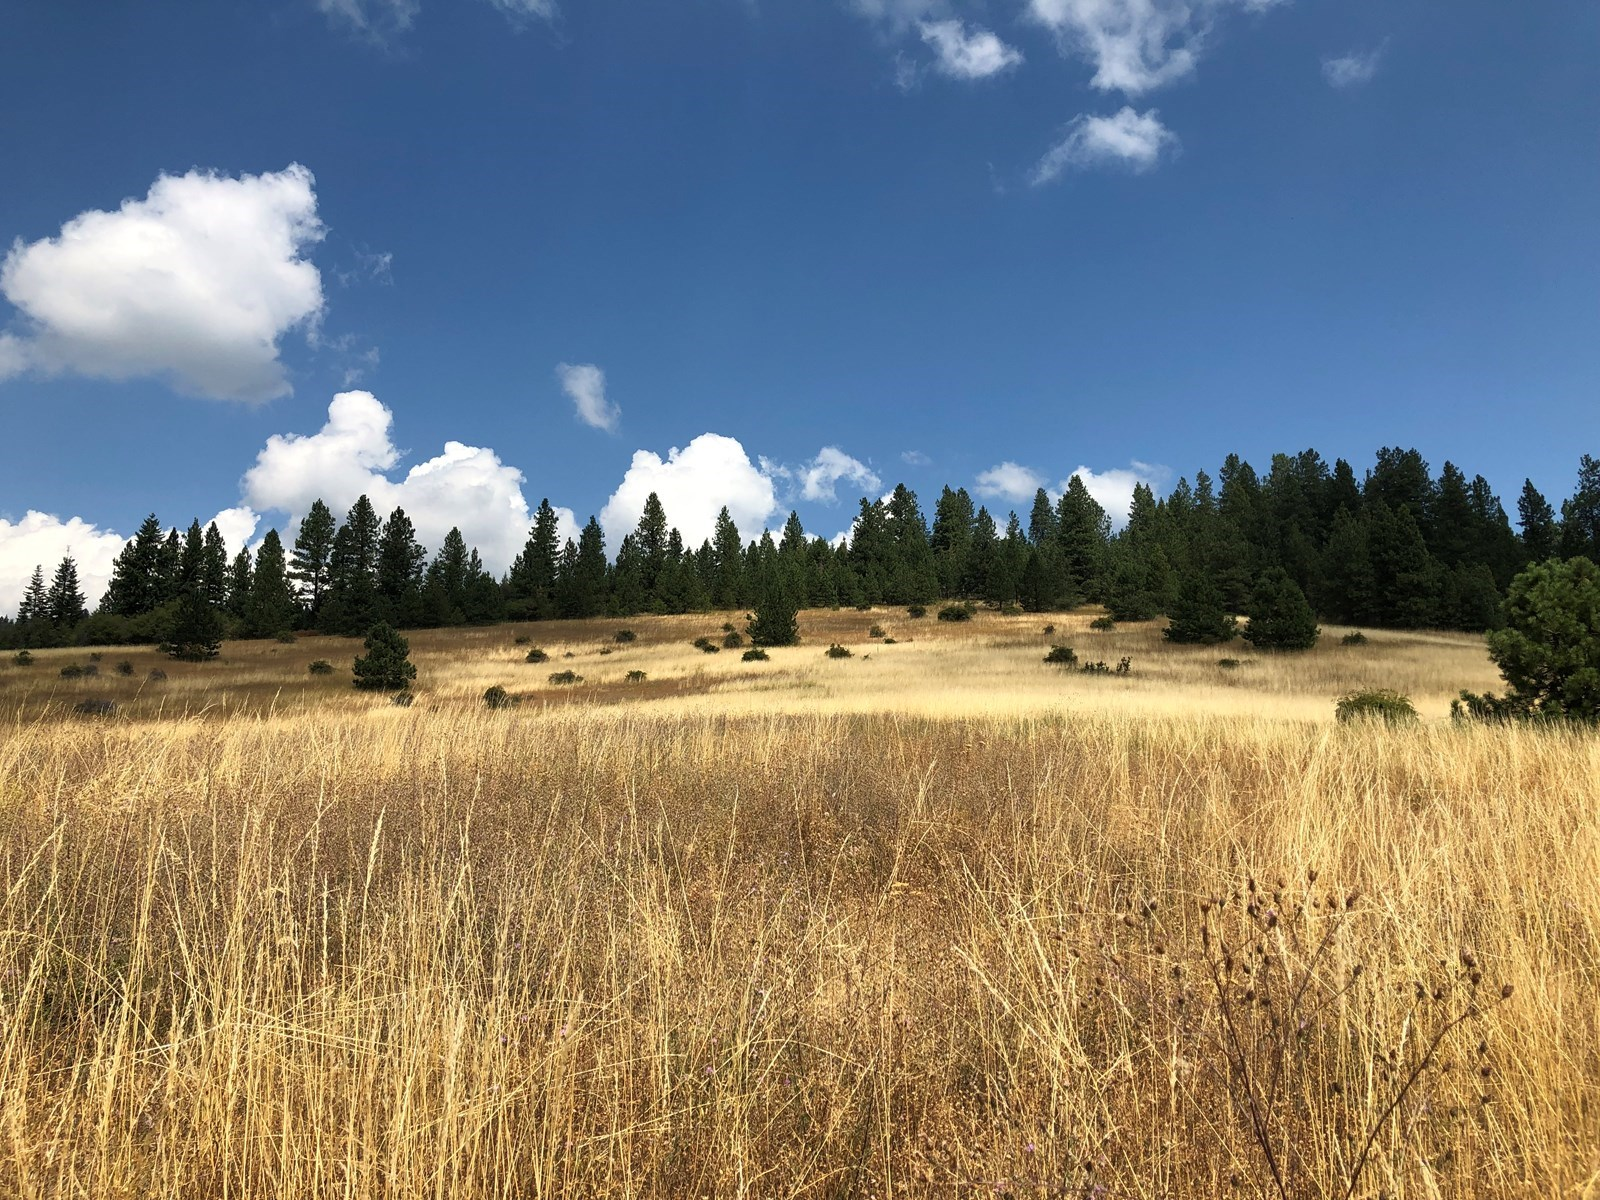 North Idaho Land For Sale Near Coeur d'Alene